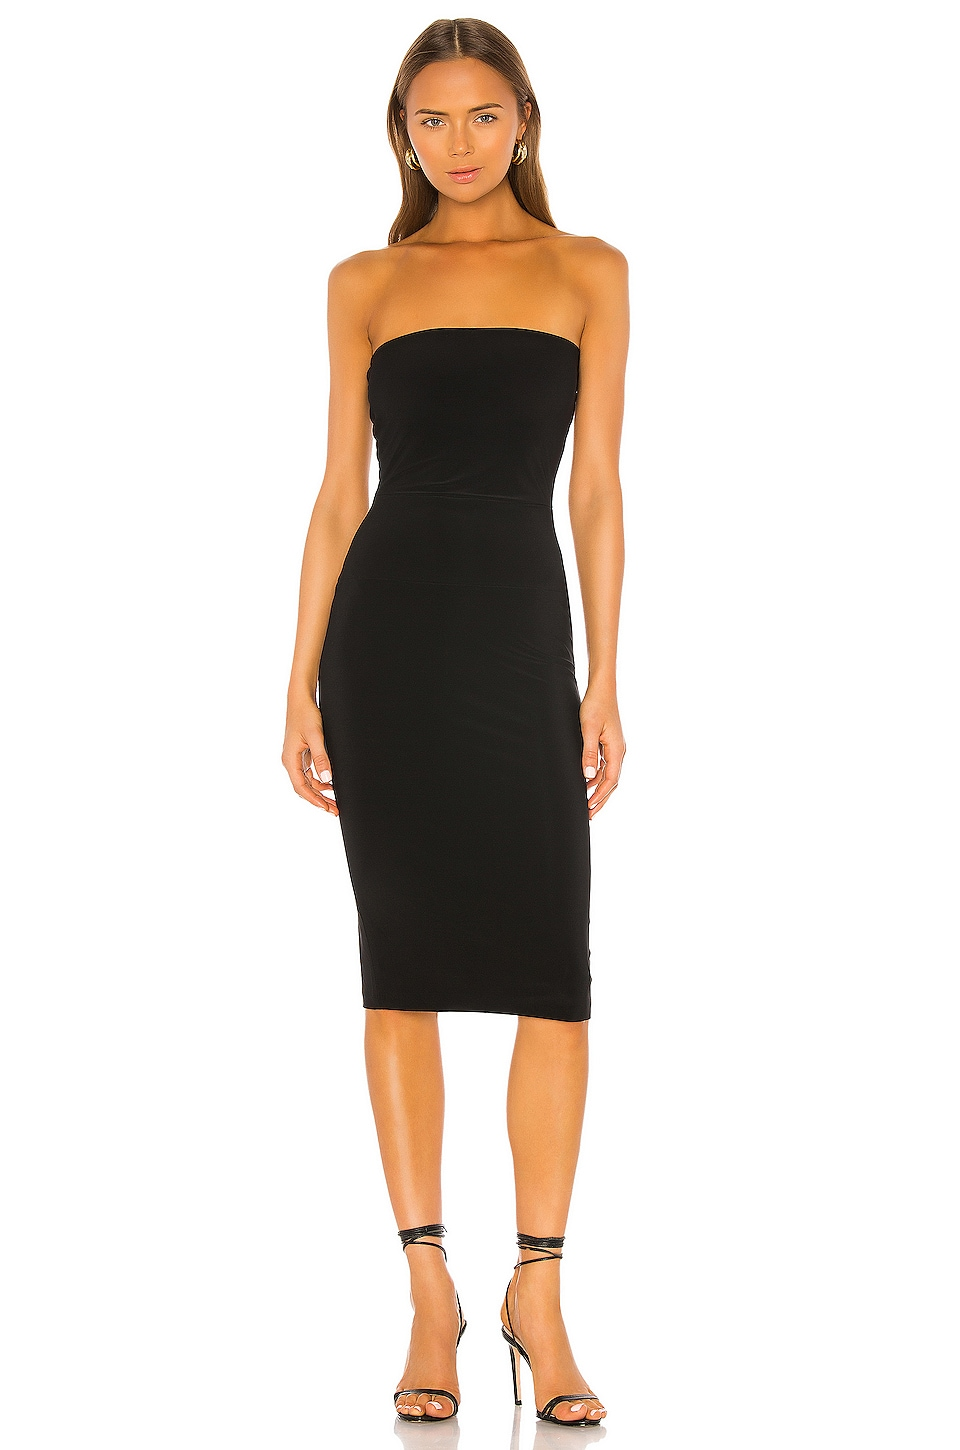 Strapless Dress                     Norma Kamali 2